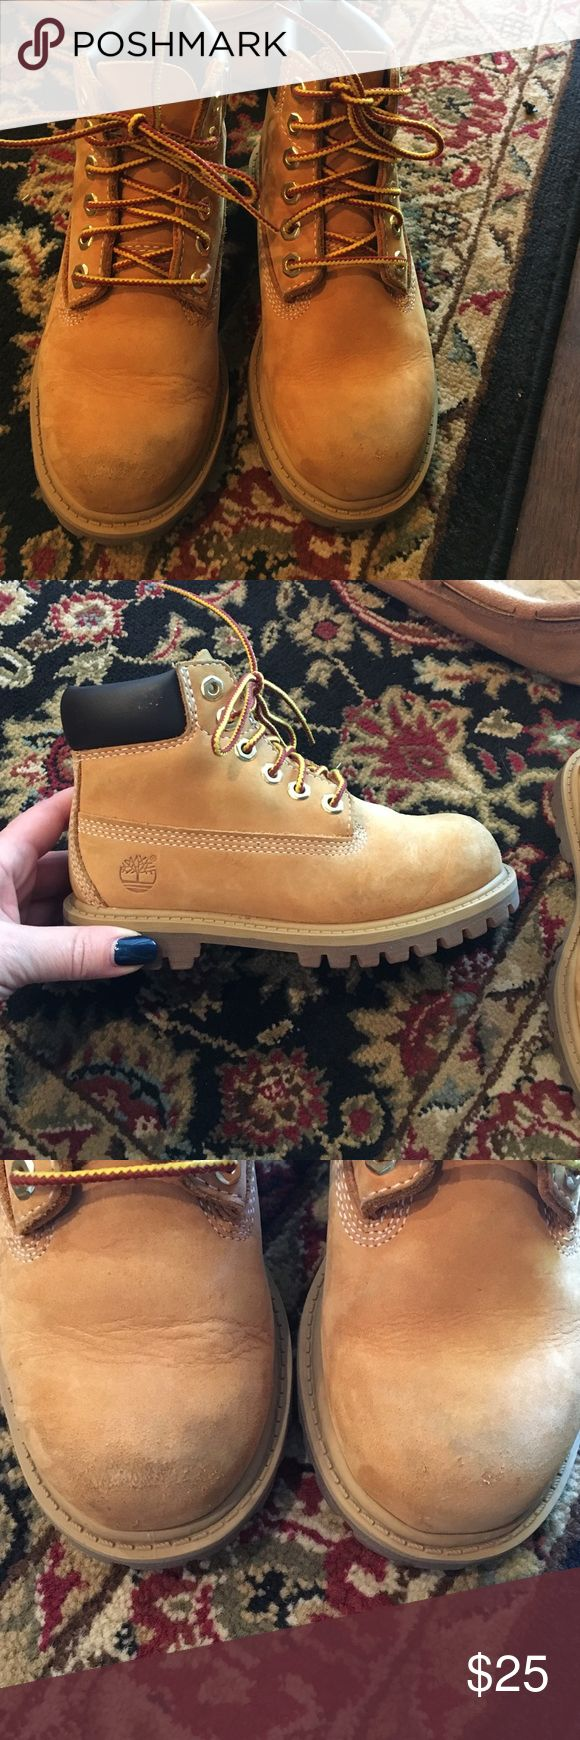 Toddler timberland boots Tan toddler timberlands Timberland Shoes Boots